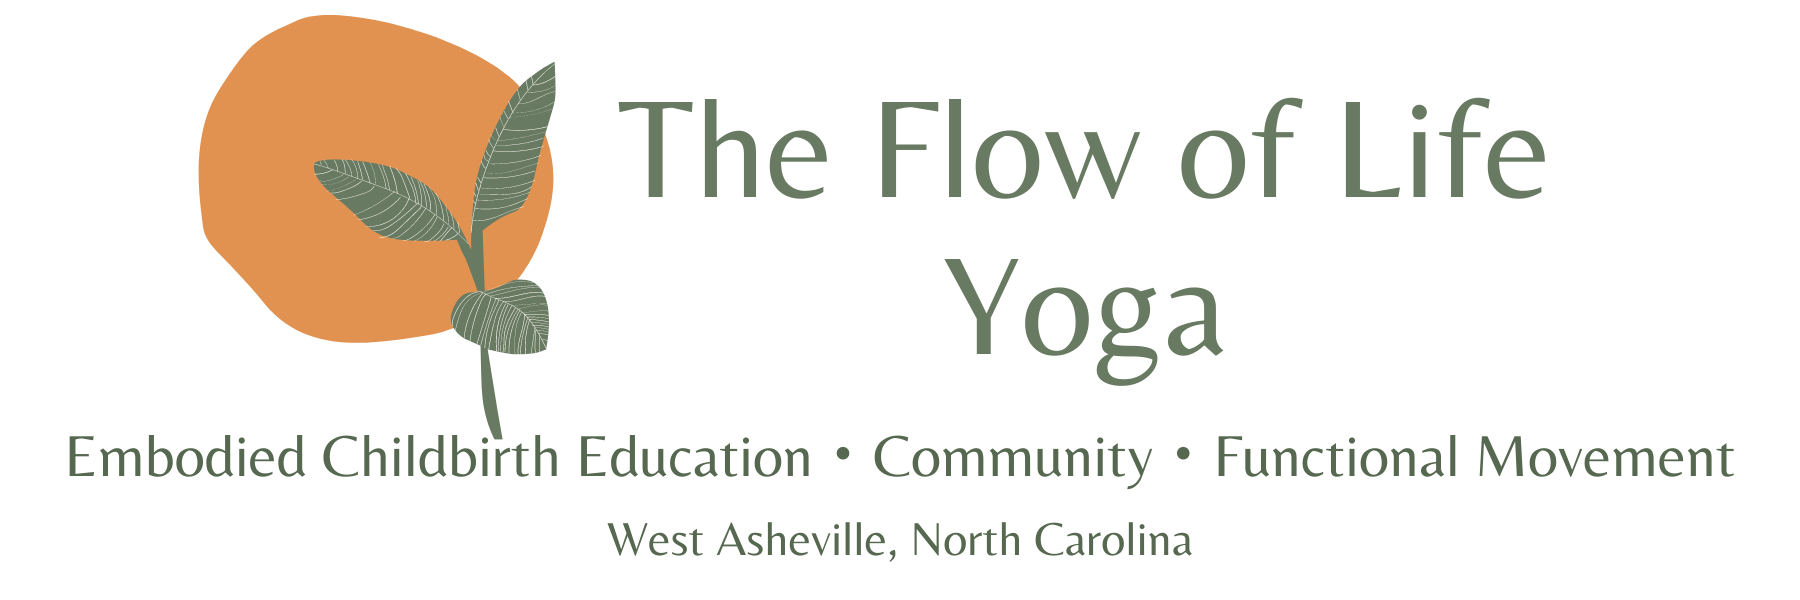 The Flow of Life Yoga